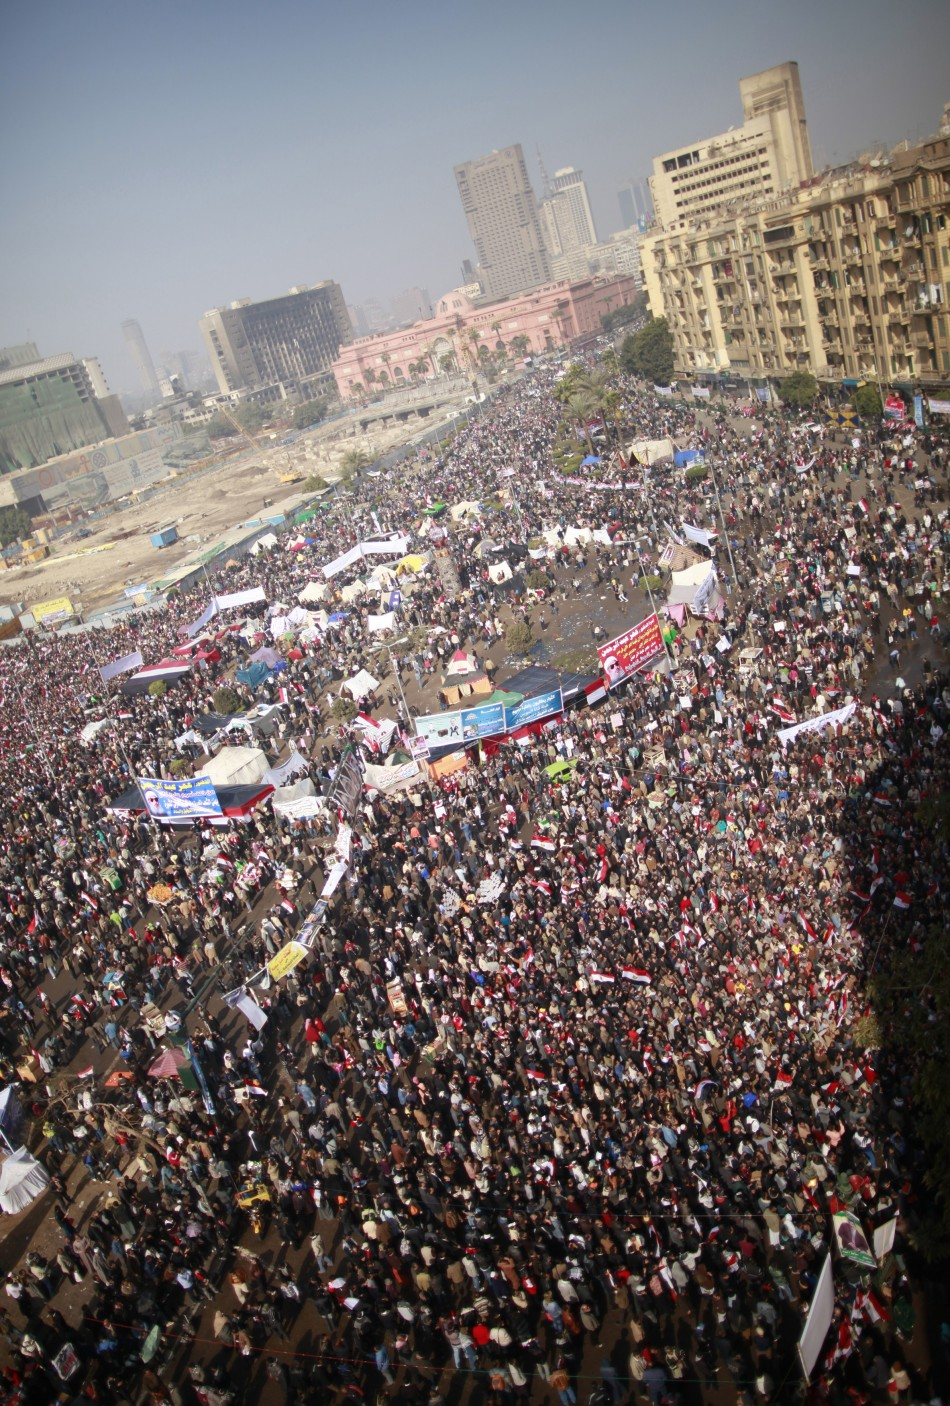 Demonstrators gather at Tahrir Square during a protest marking the first anniversary of Egypt's uprising in Cairo